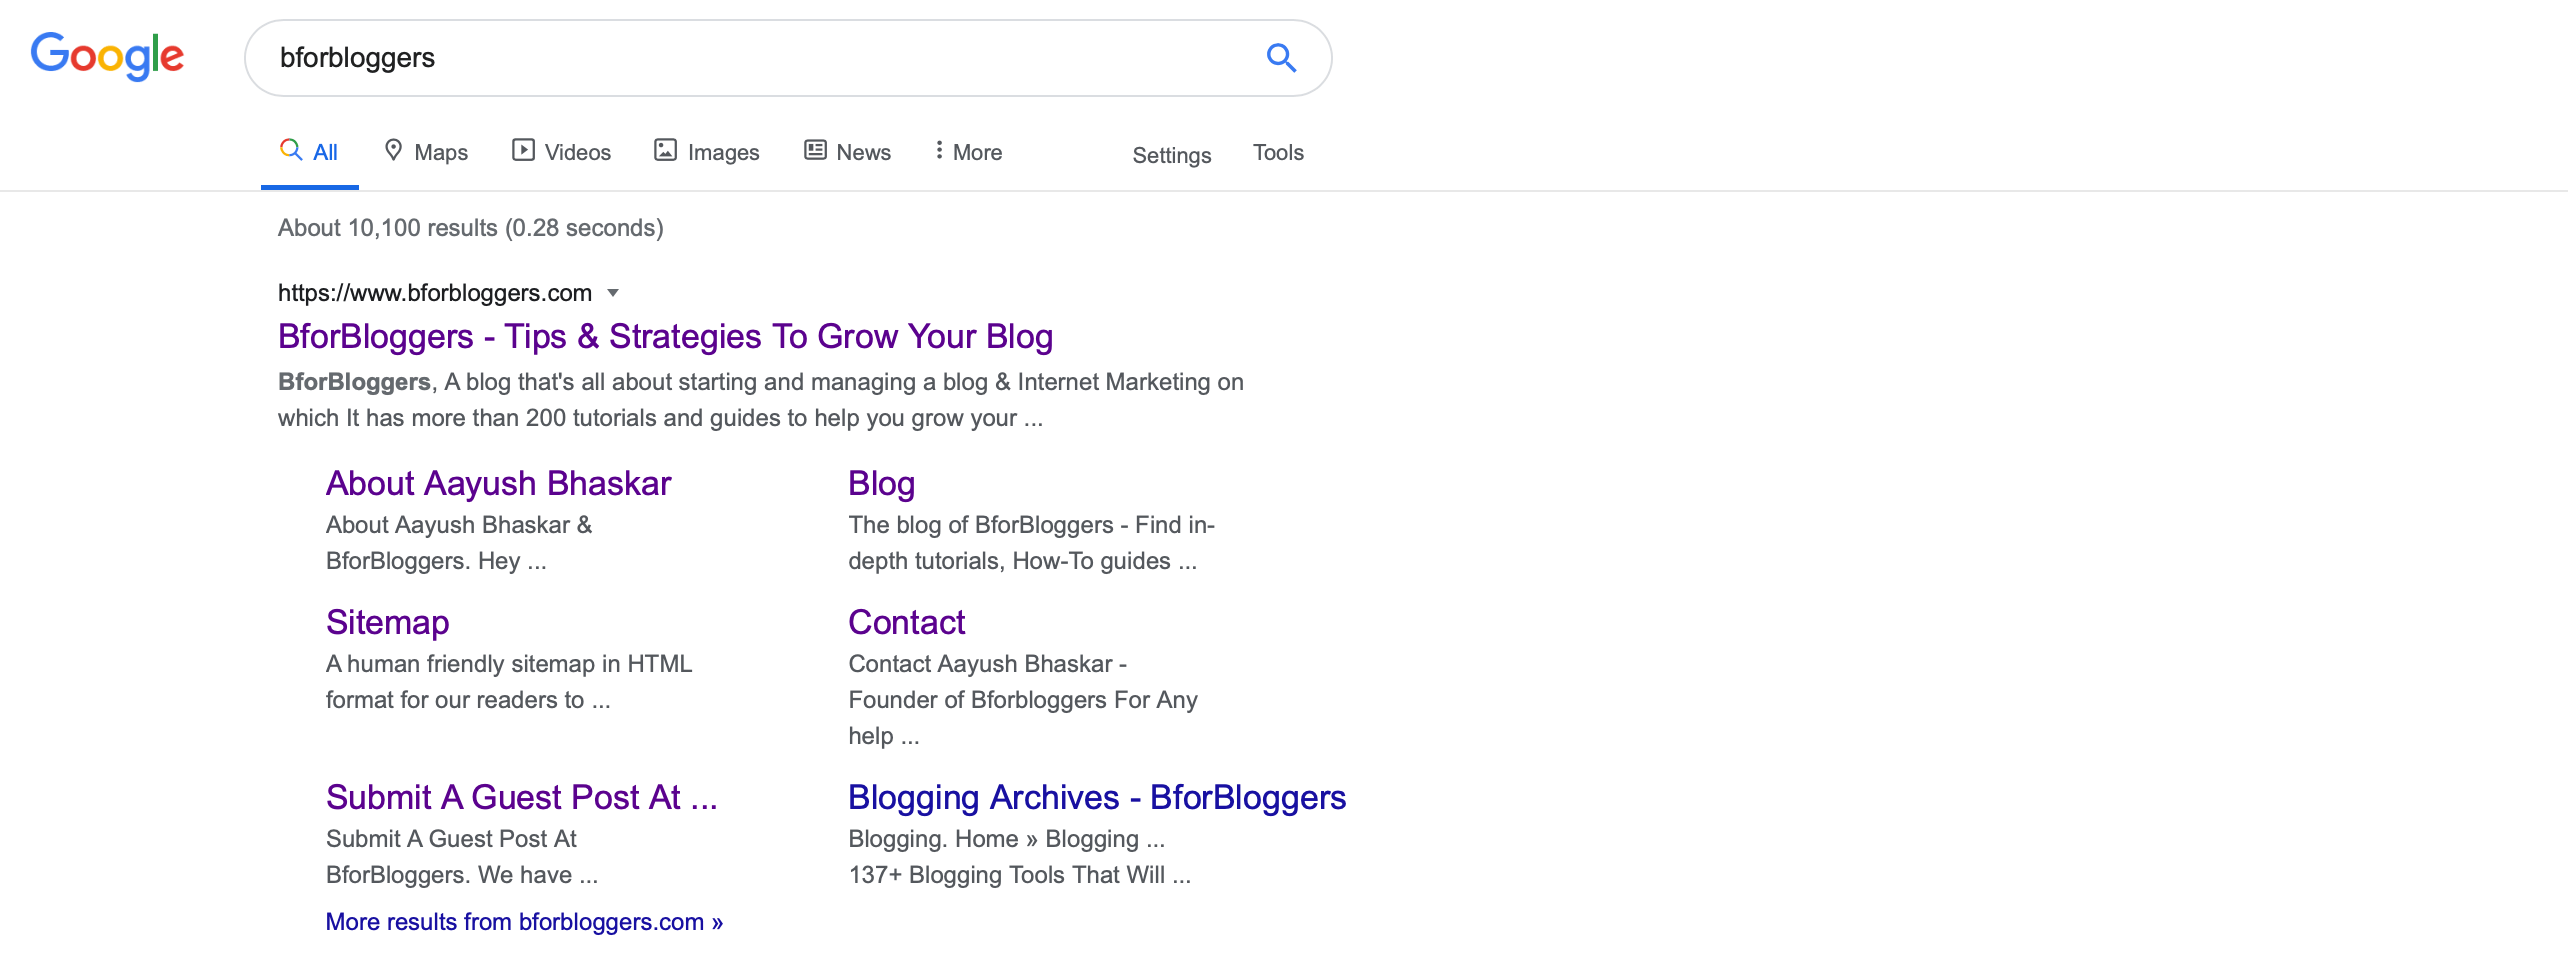 Searching-for-bforbloggers-on-google-and-sitelinks-appear